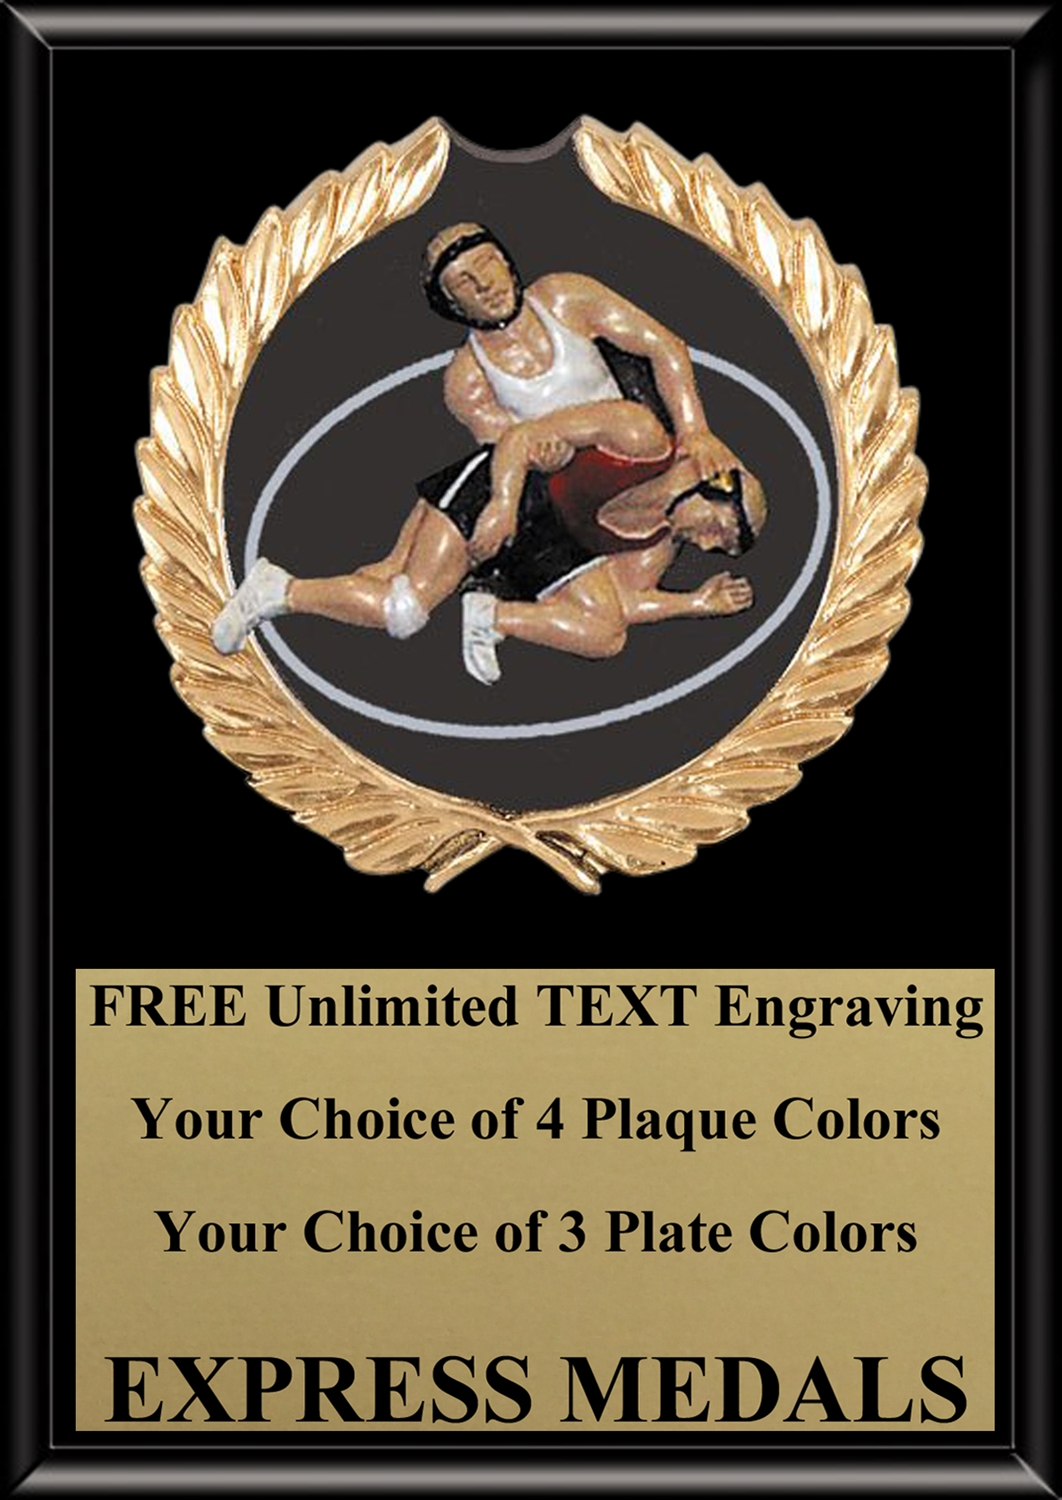 Full Color Wrestling Plaque 4x6 & 5x7 PM670-VL